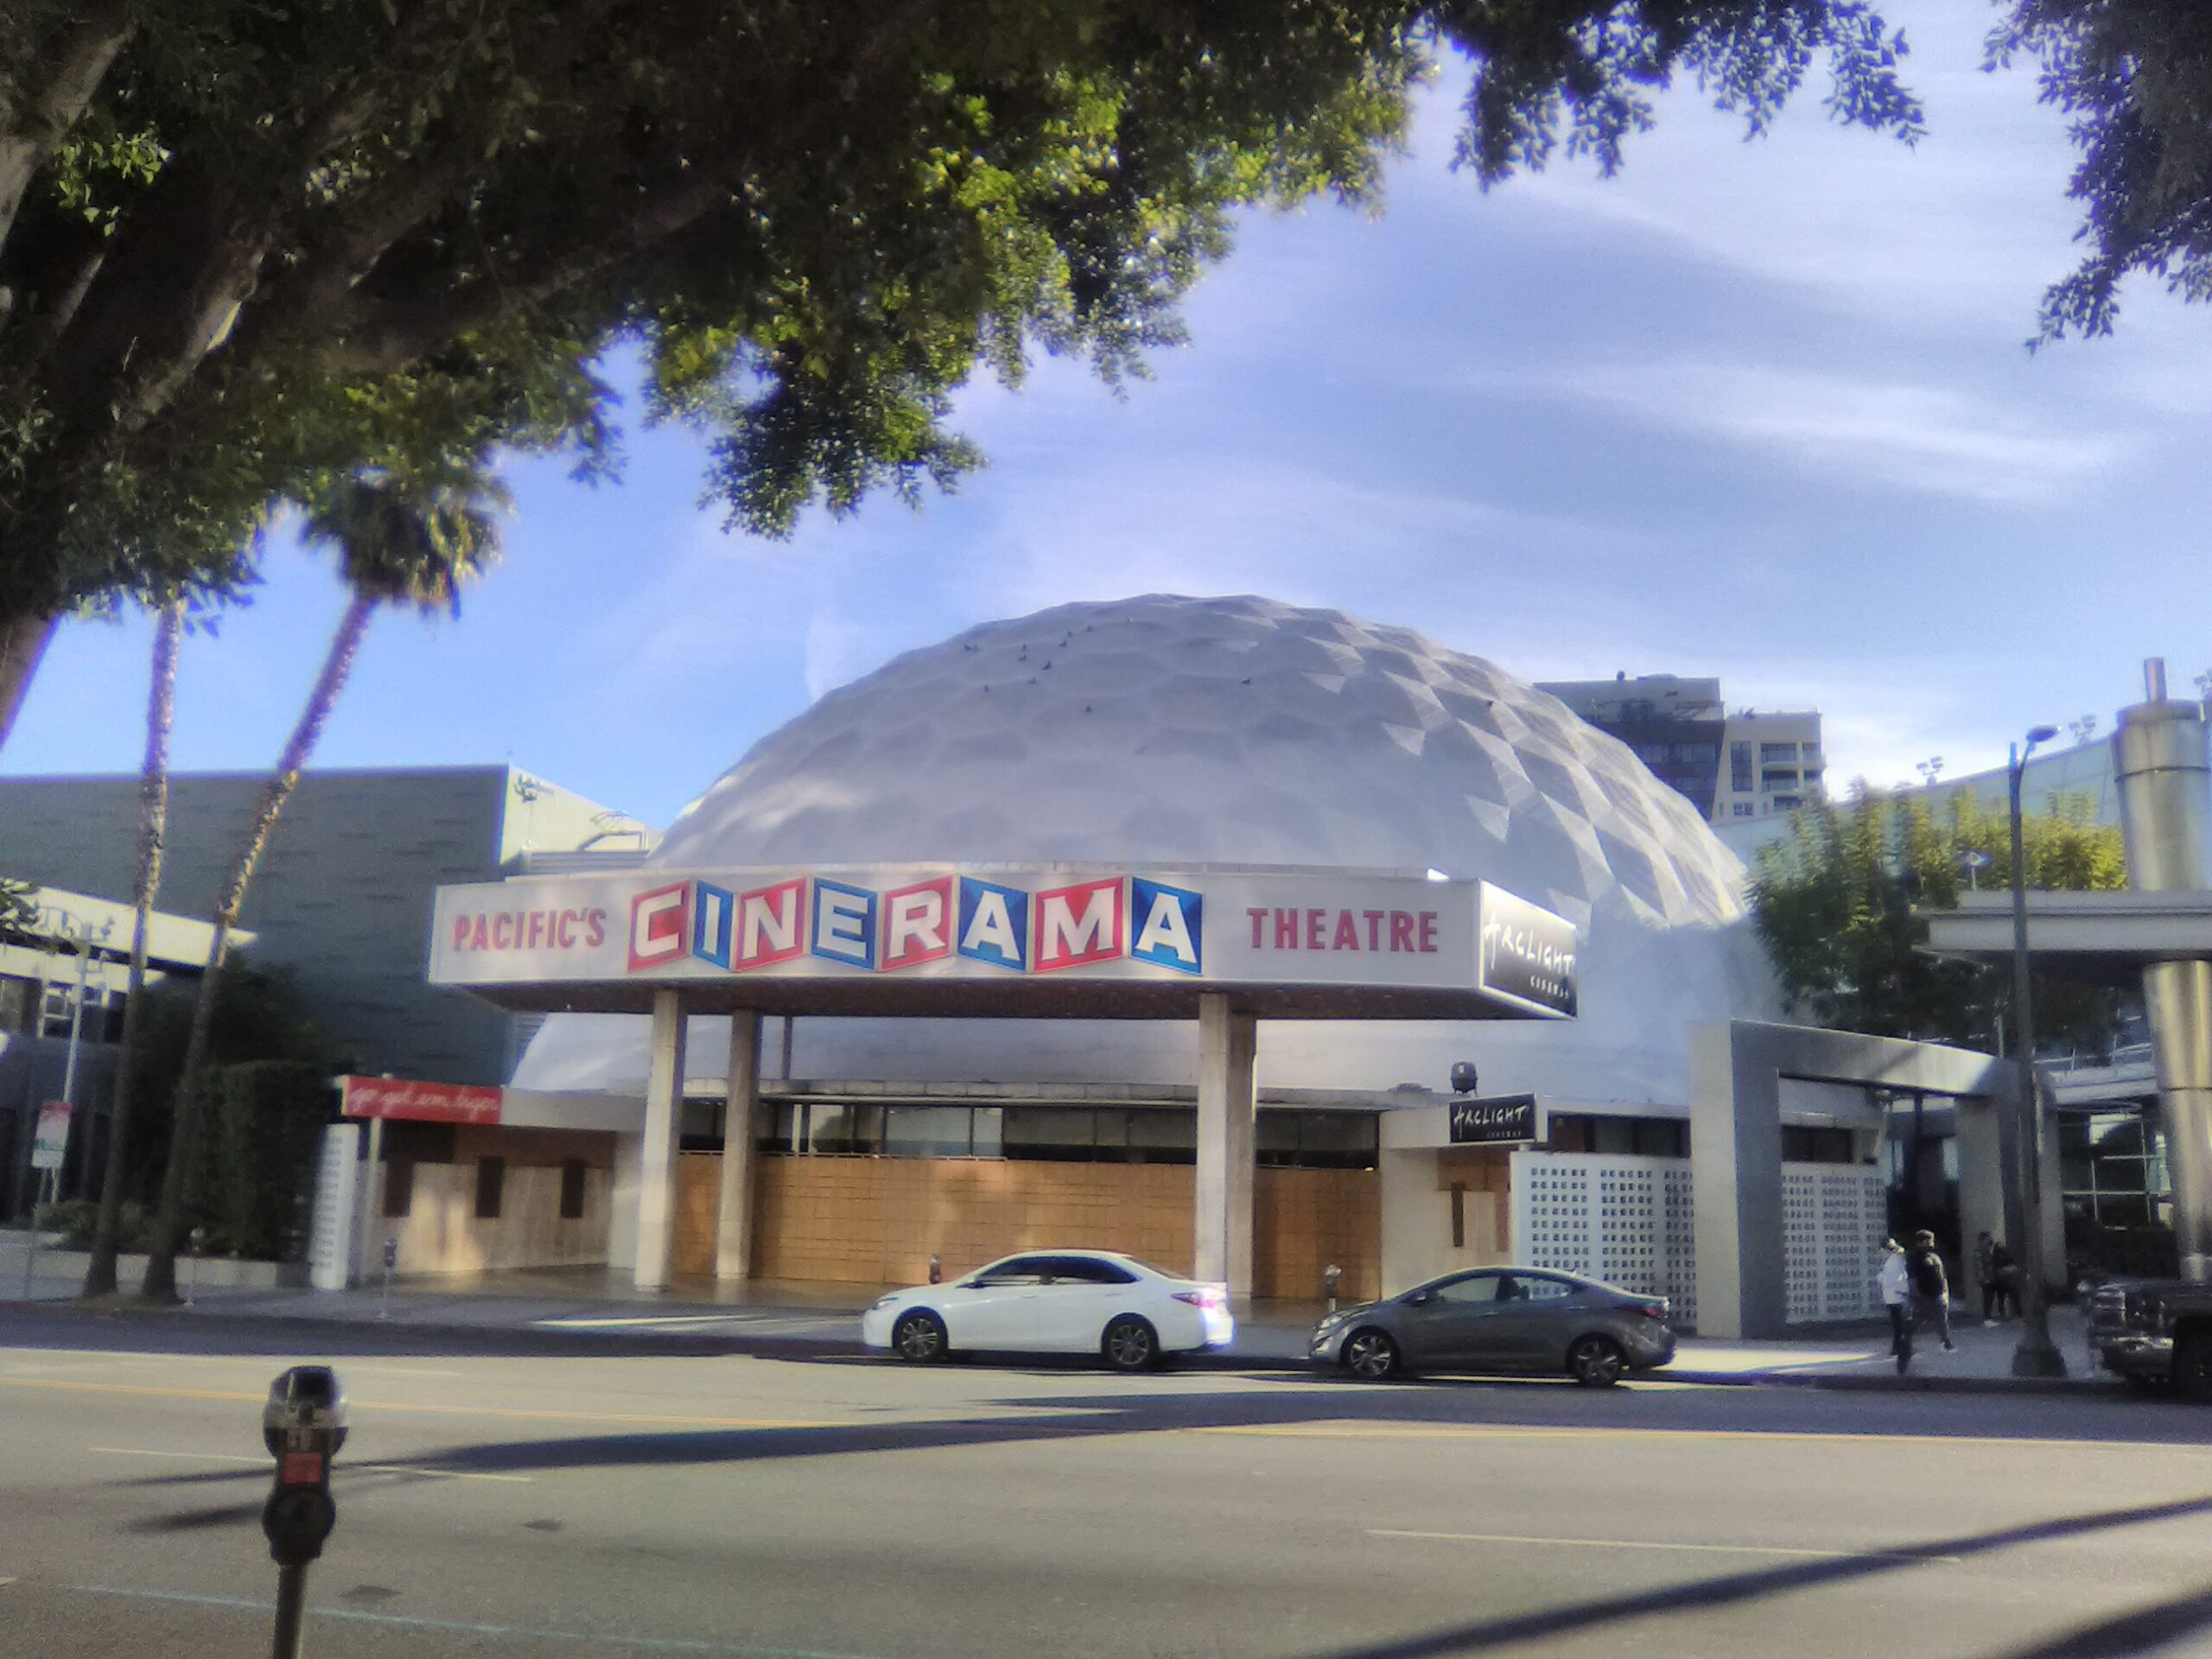 ArcLight Hollywood-Pacific Cinerama Dome Theater. Photo: Yevette Renee